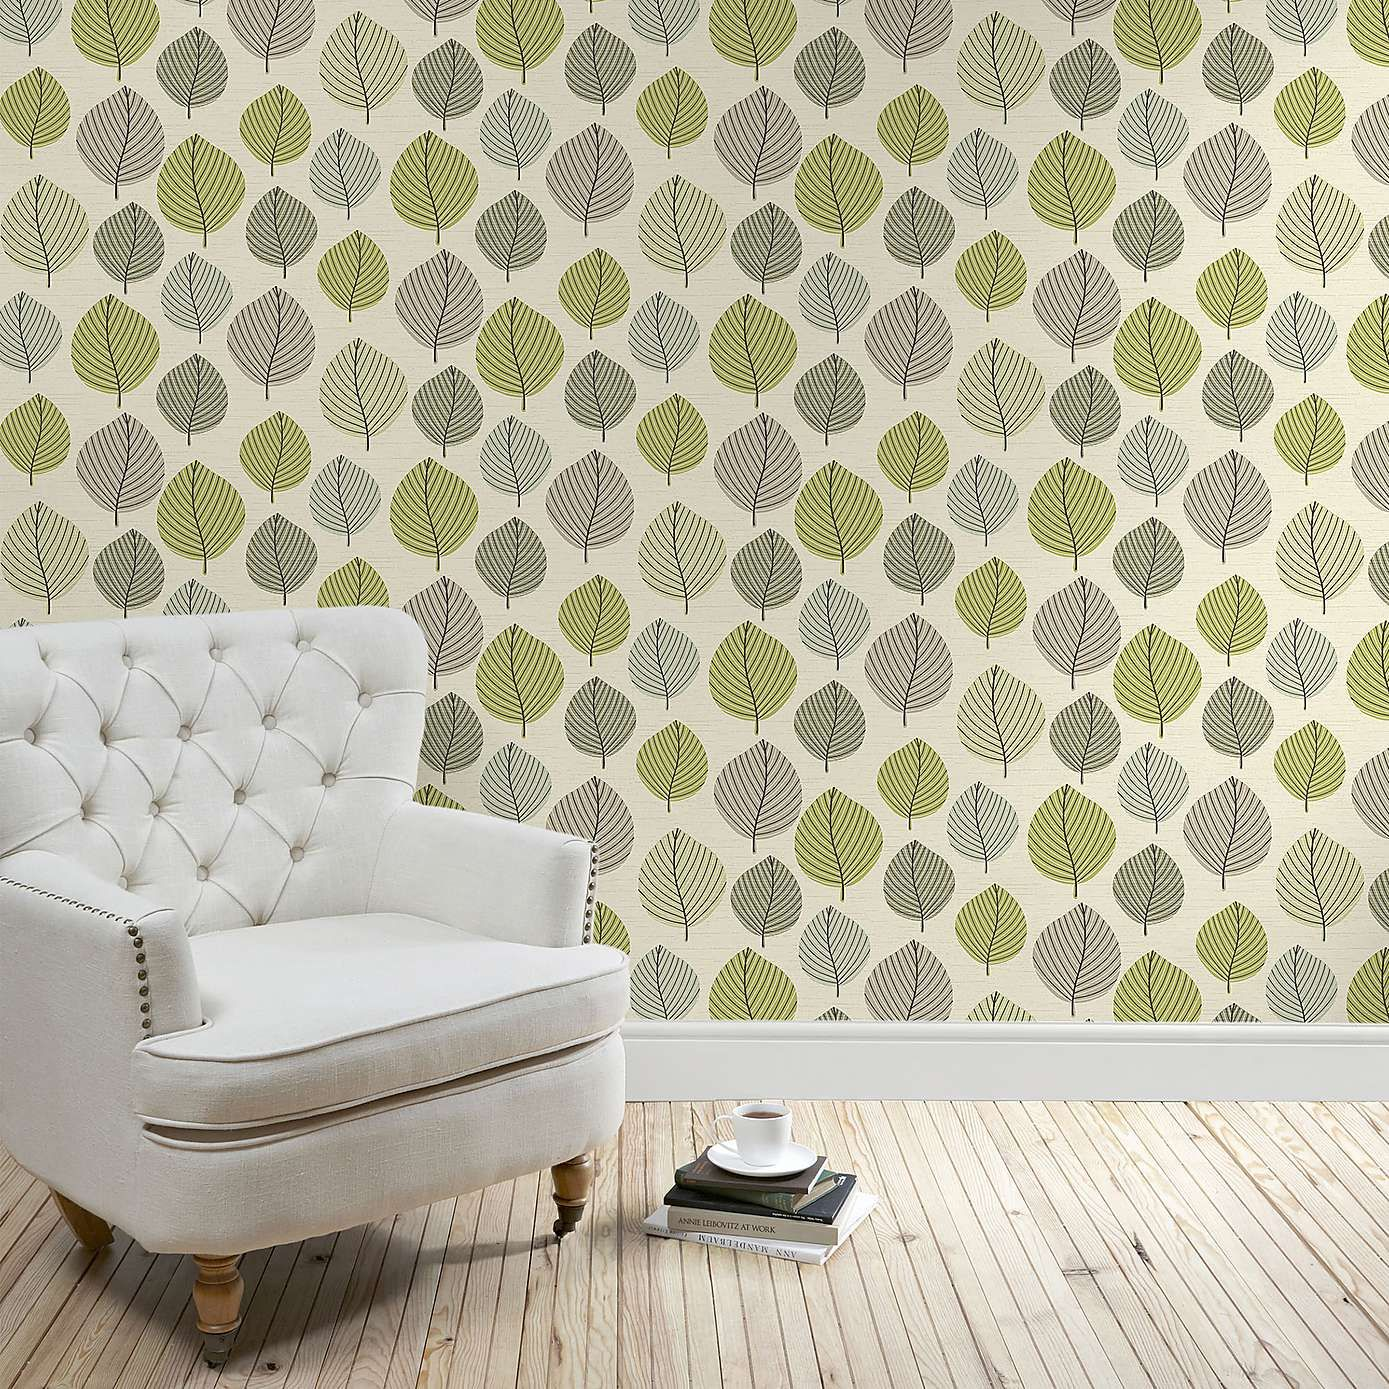 Dunelm bathroom furniture - Wide Range Of Wallpaper Available To Buy Today At Dunelm The Uk S Largest Homewares And Soft Furnishings Store